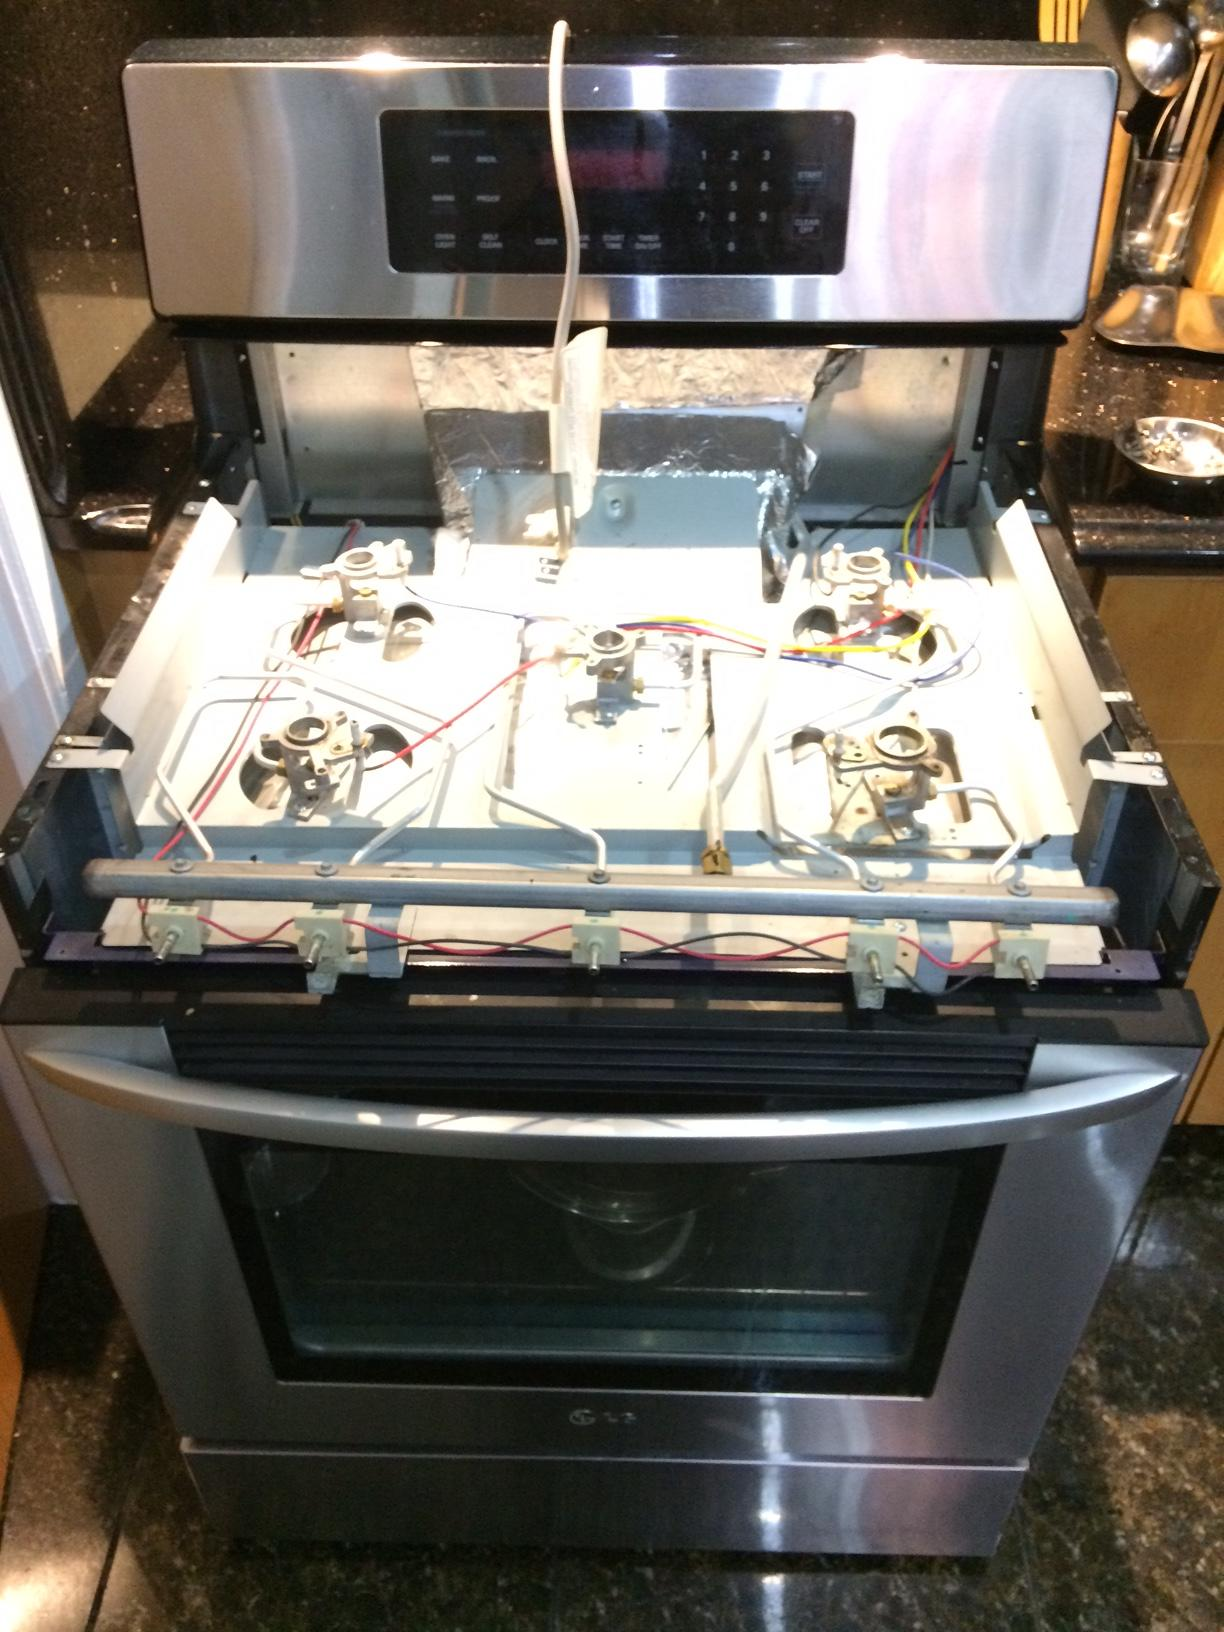 Global Solutions Appliance Repair image 71